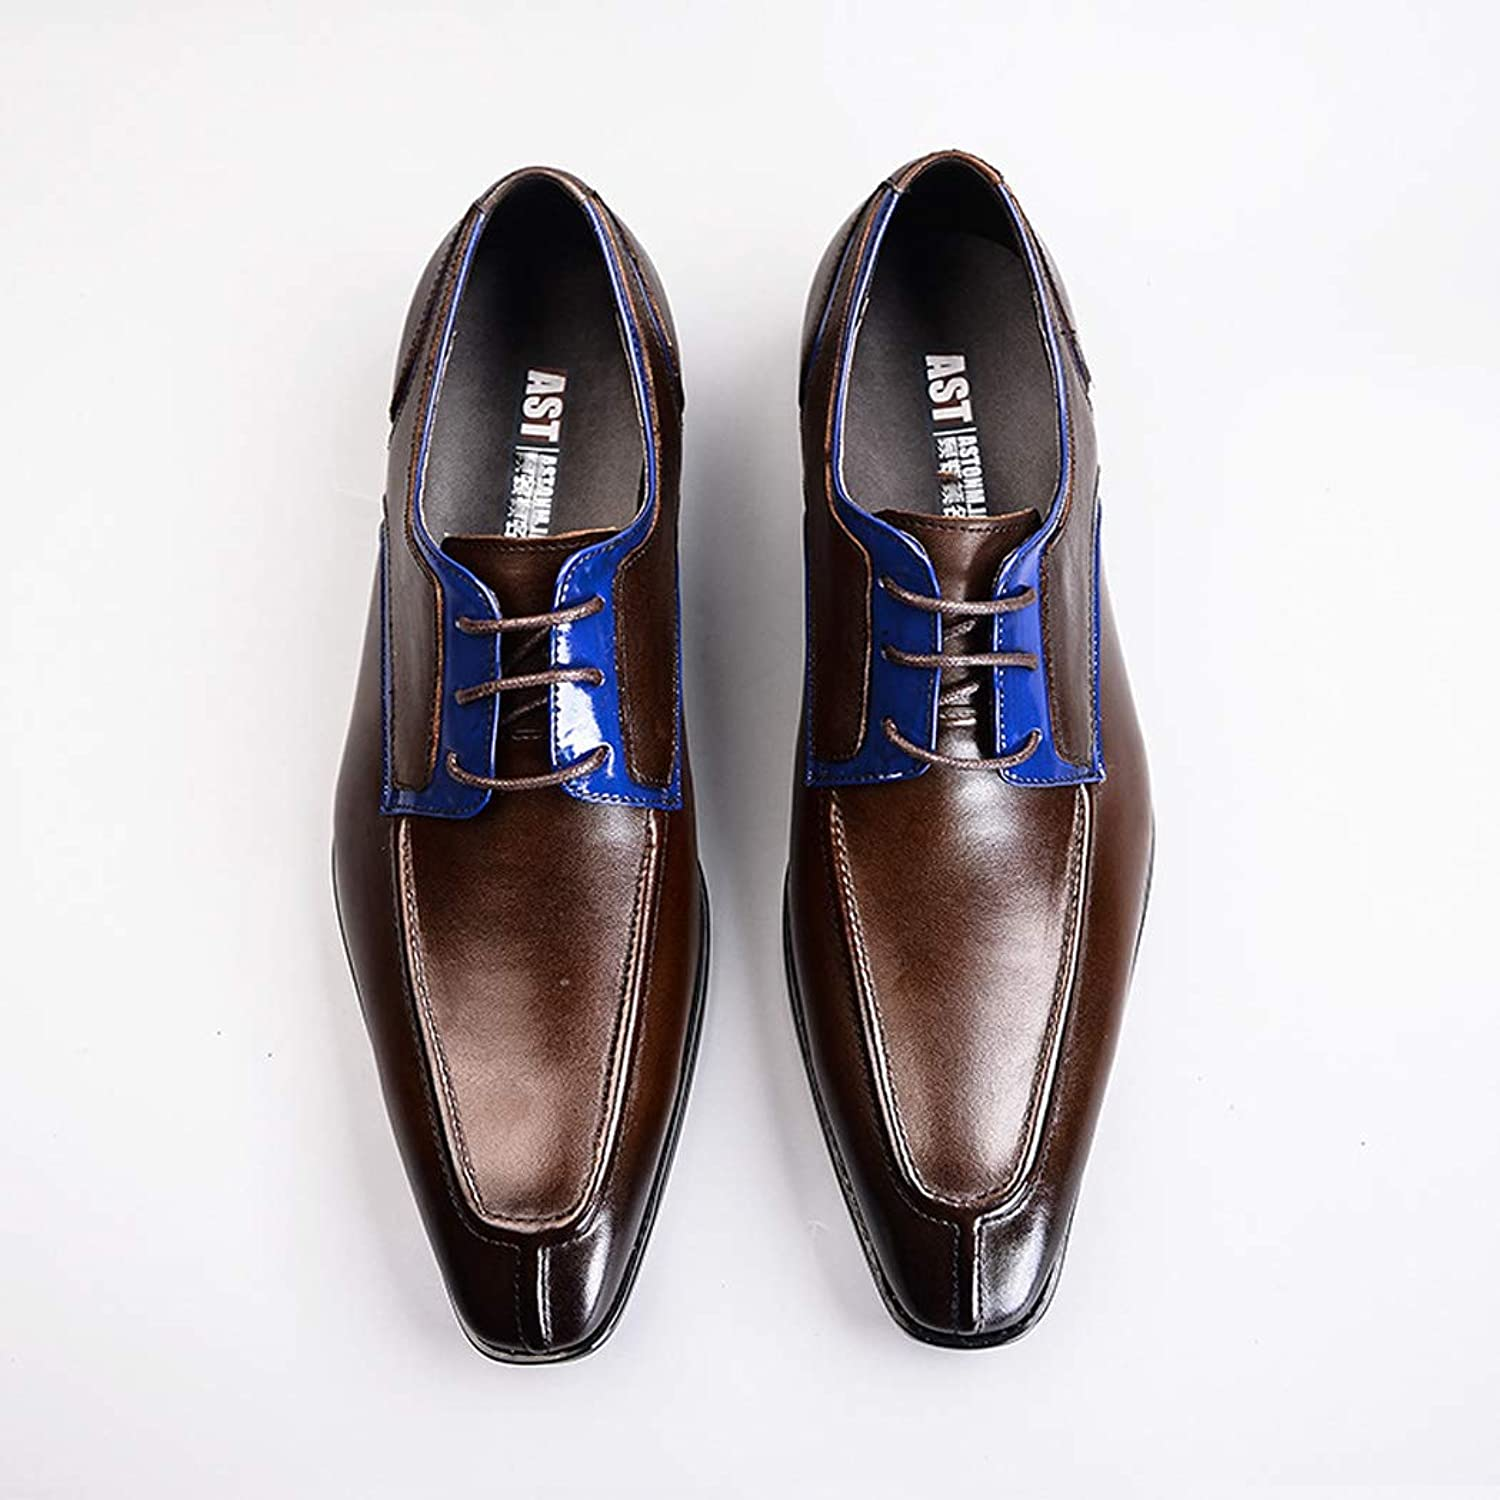 Men's Fashion Leather Formal shoes, New Leather Business Dress Men's shoes